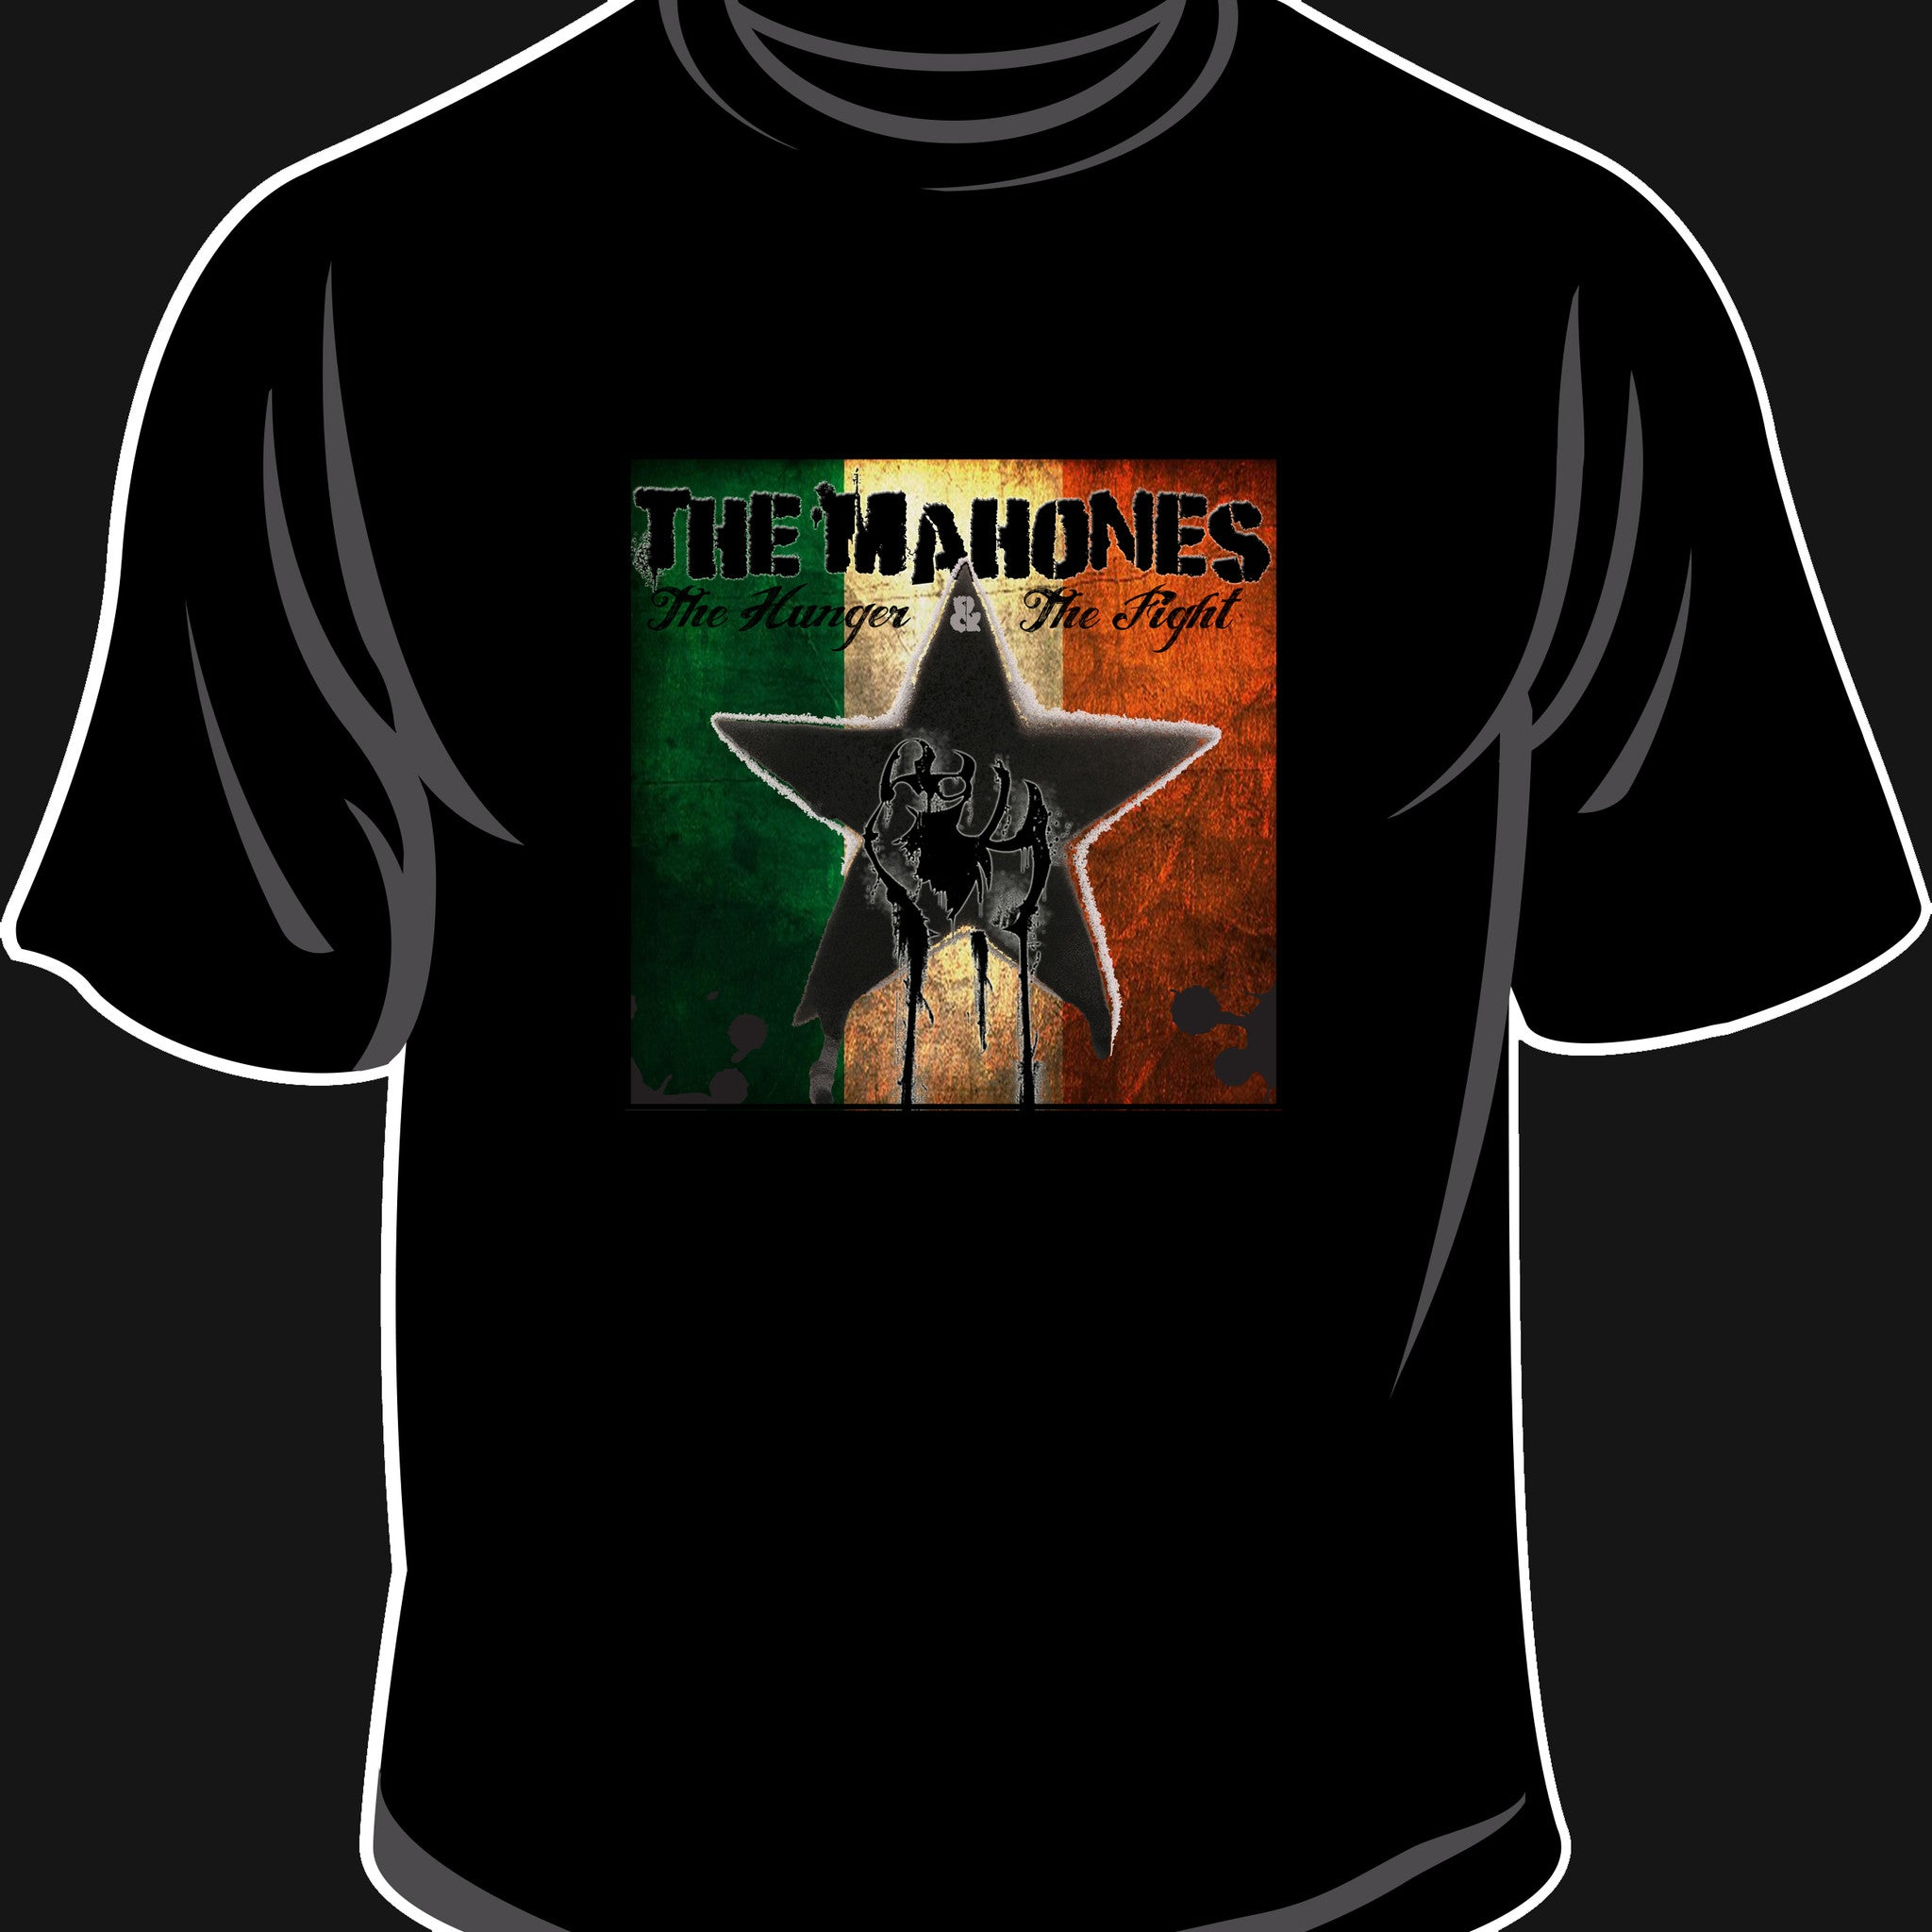 The Hunger & The Fight (Irish) Shirt